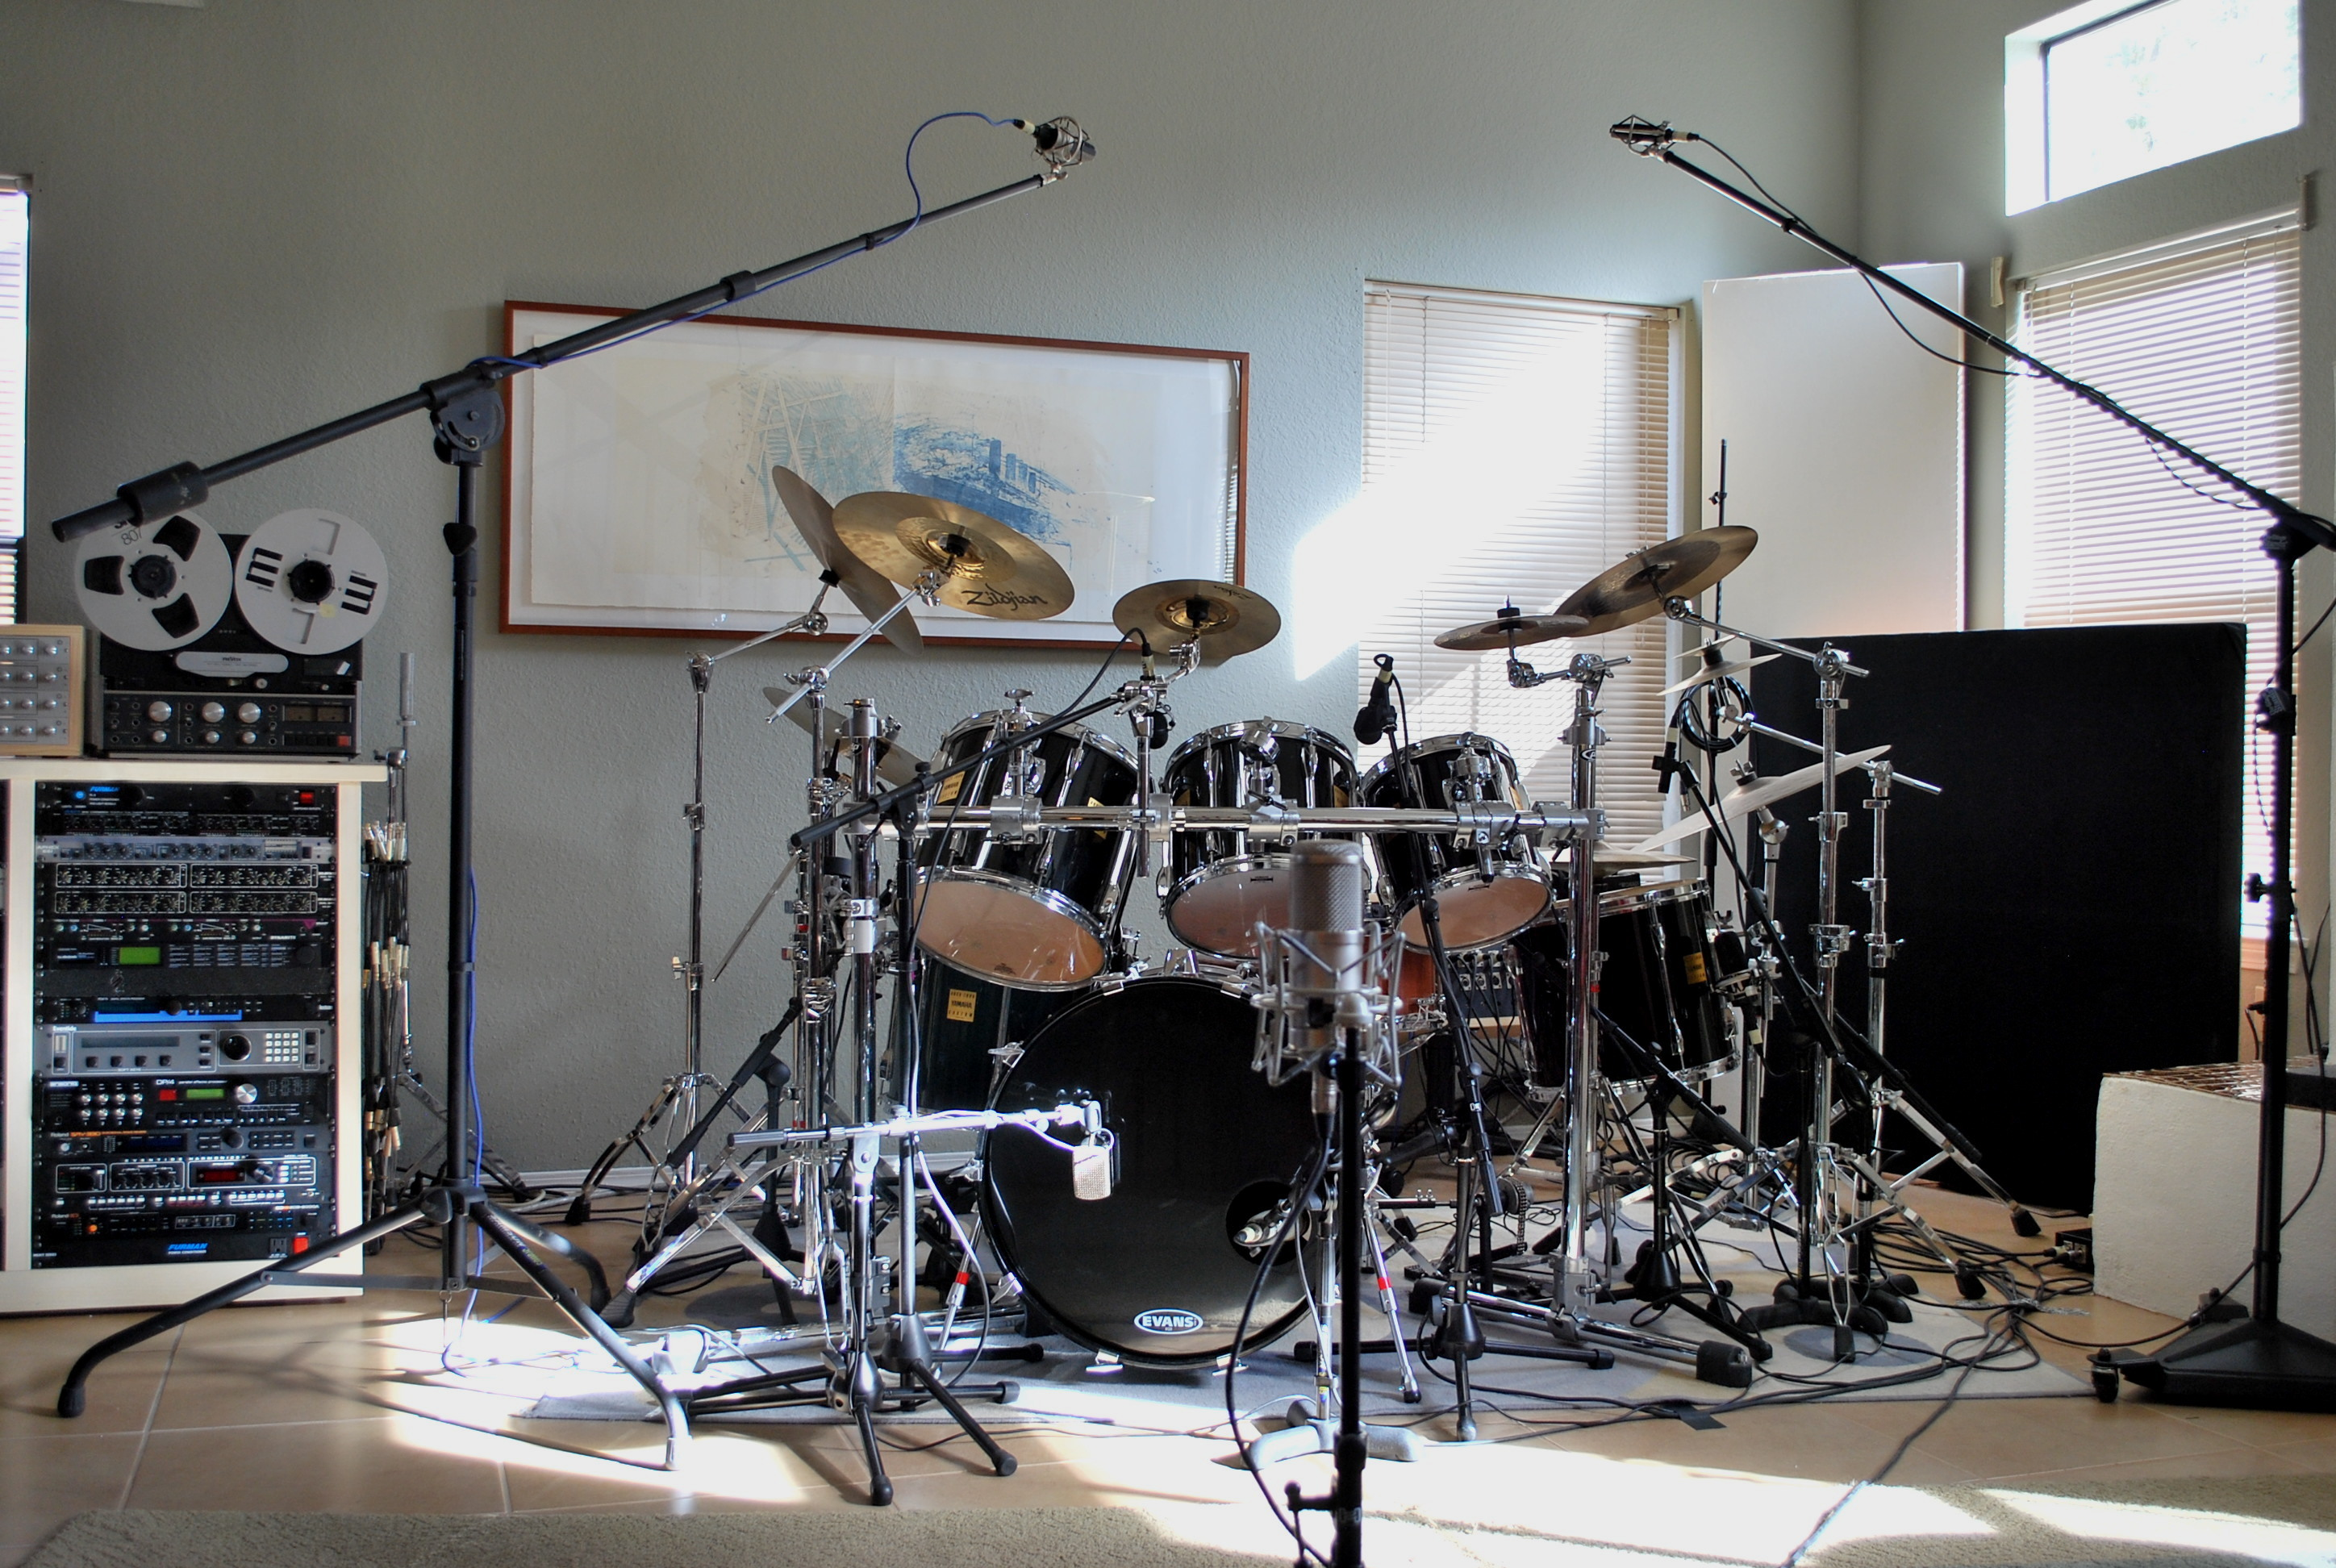 pictures of mic 39 ed up drum kits in the studio page 103 gearslutz pro audio community. Black Bedroom Furniture Sets. Home Design Ideas